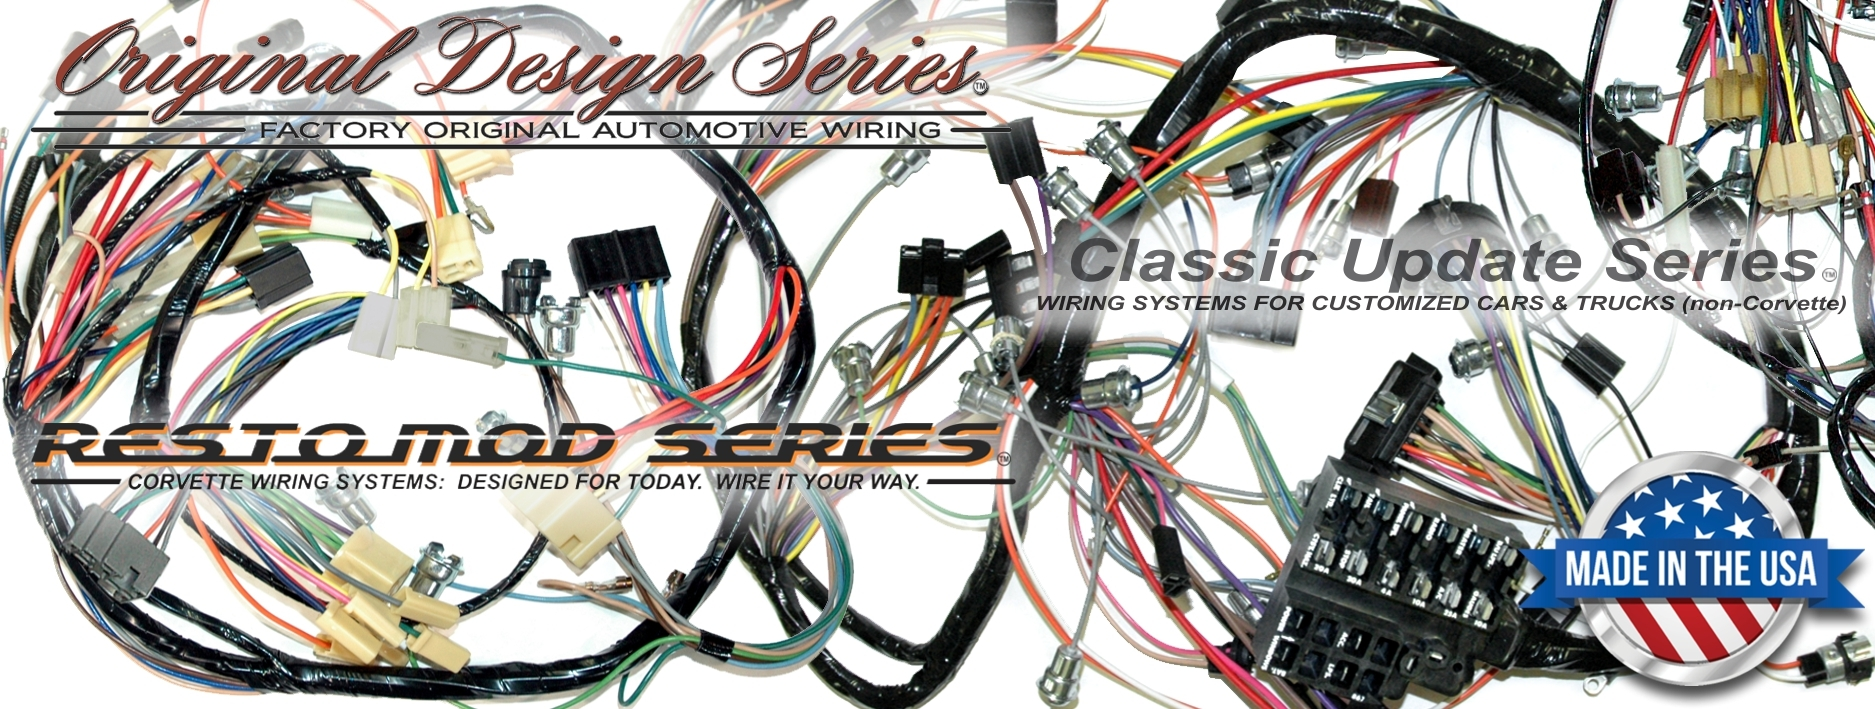 new header wiring_harnesses exact oem reproduction wiring harnesses and restomod wiring wiring harness for cars at readyjetset.co